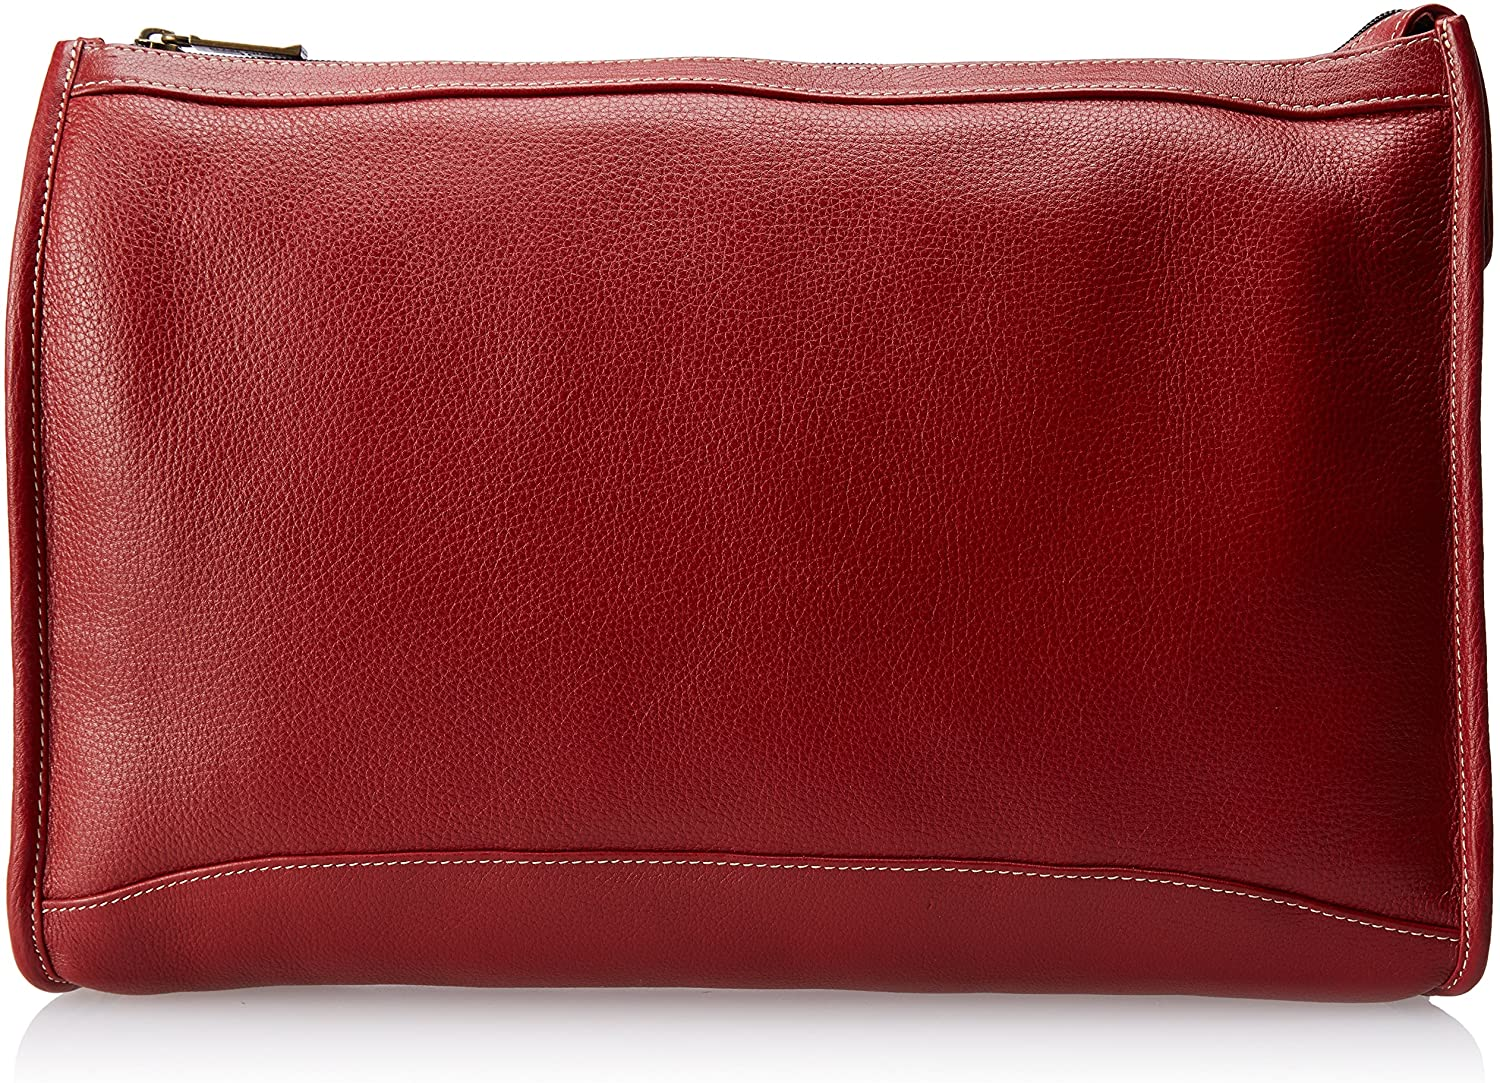 Claire Chase Zippered Folio Pouch, Red, One Size  Claire Chase  Clothing